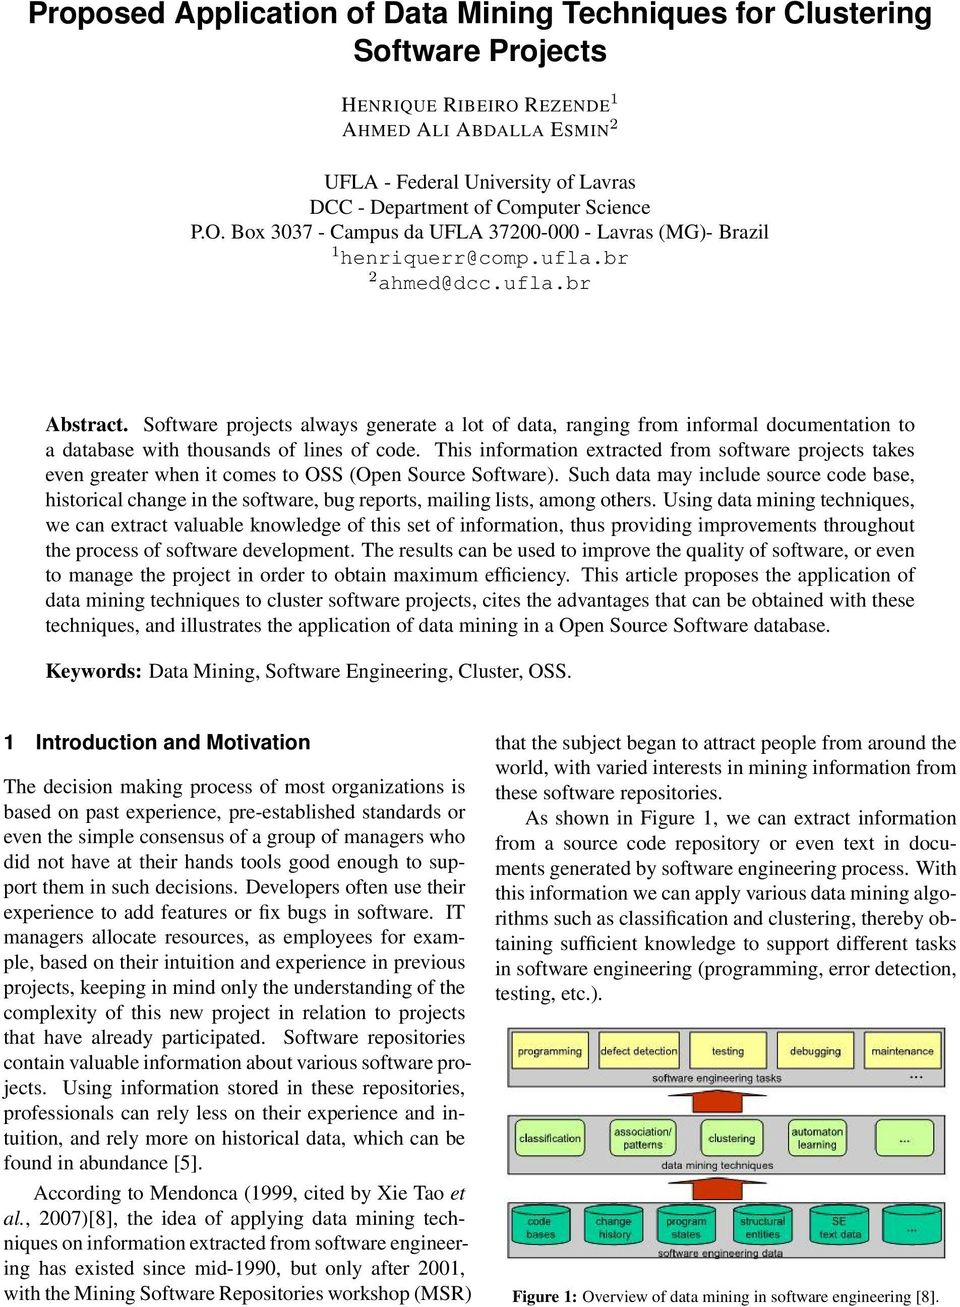 Proposed Application of Data Mining Techniques for